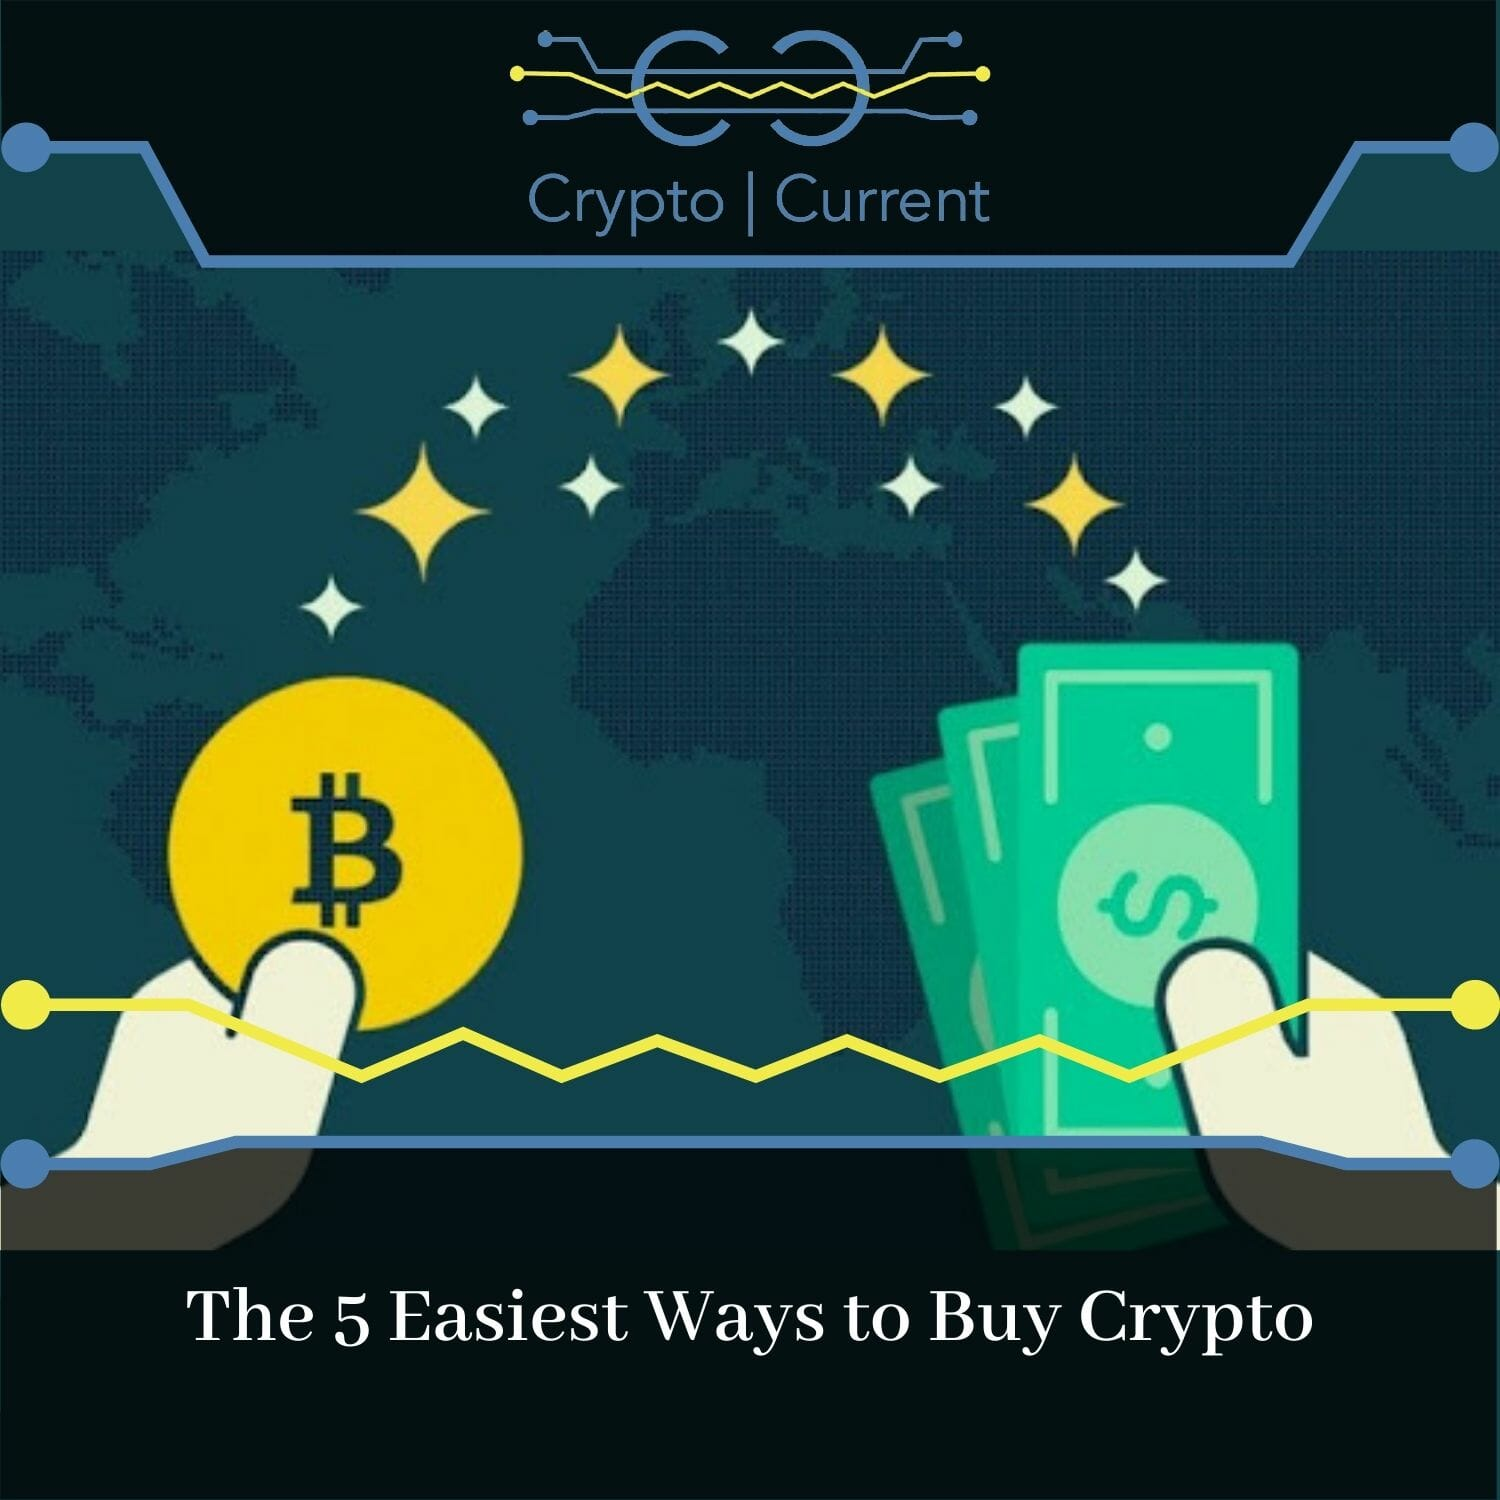 The 5 Easiest Ways to Buy Crypto